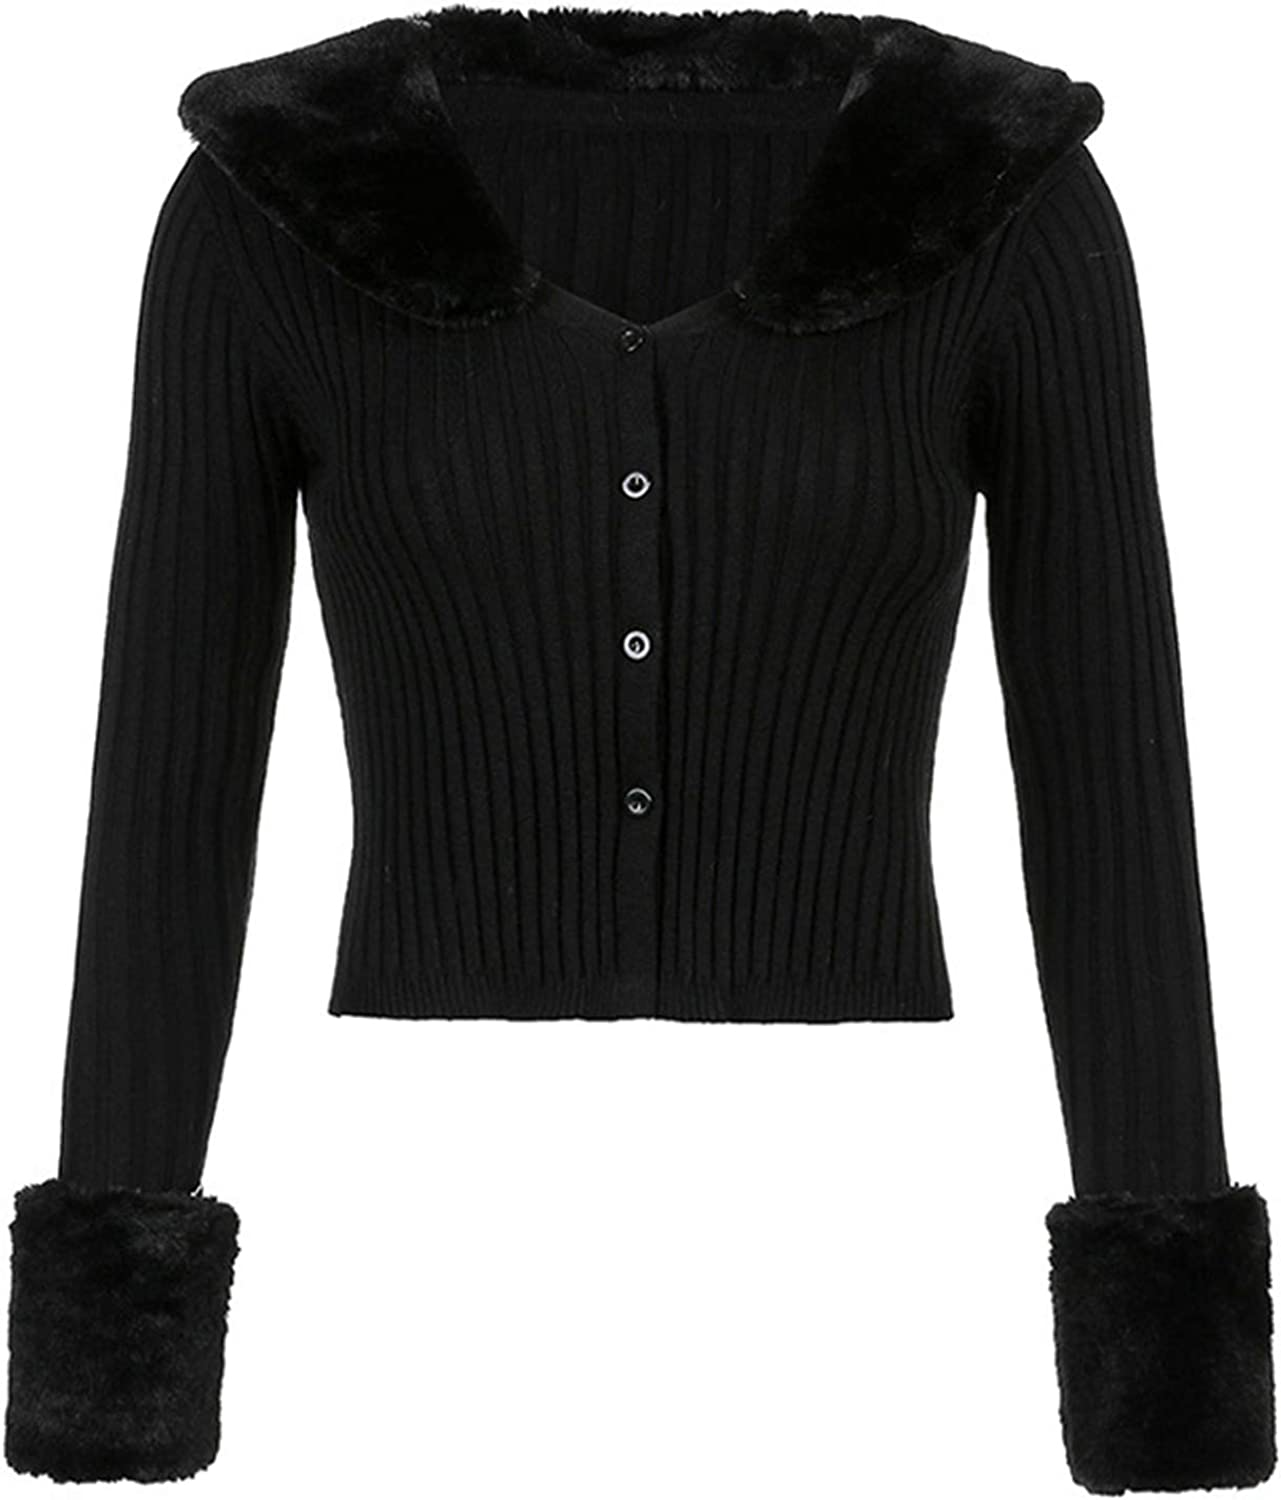 Womens V-Neck Long Sleeve Cropped Tops Slim Fit T-Shirt Button Up Cardigan Coats